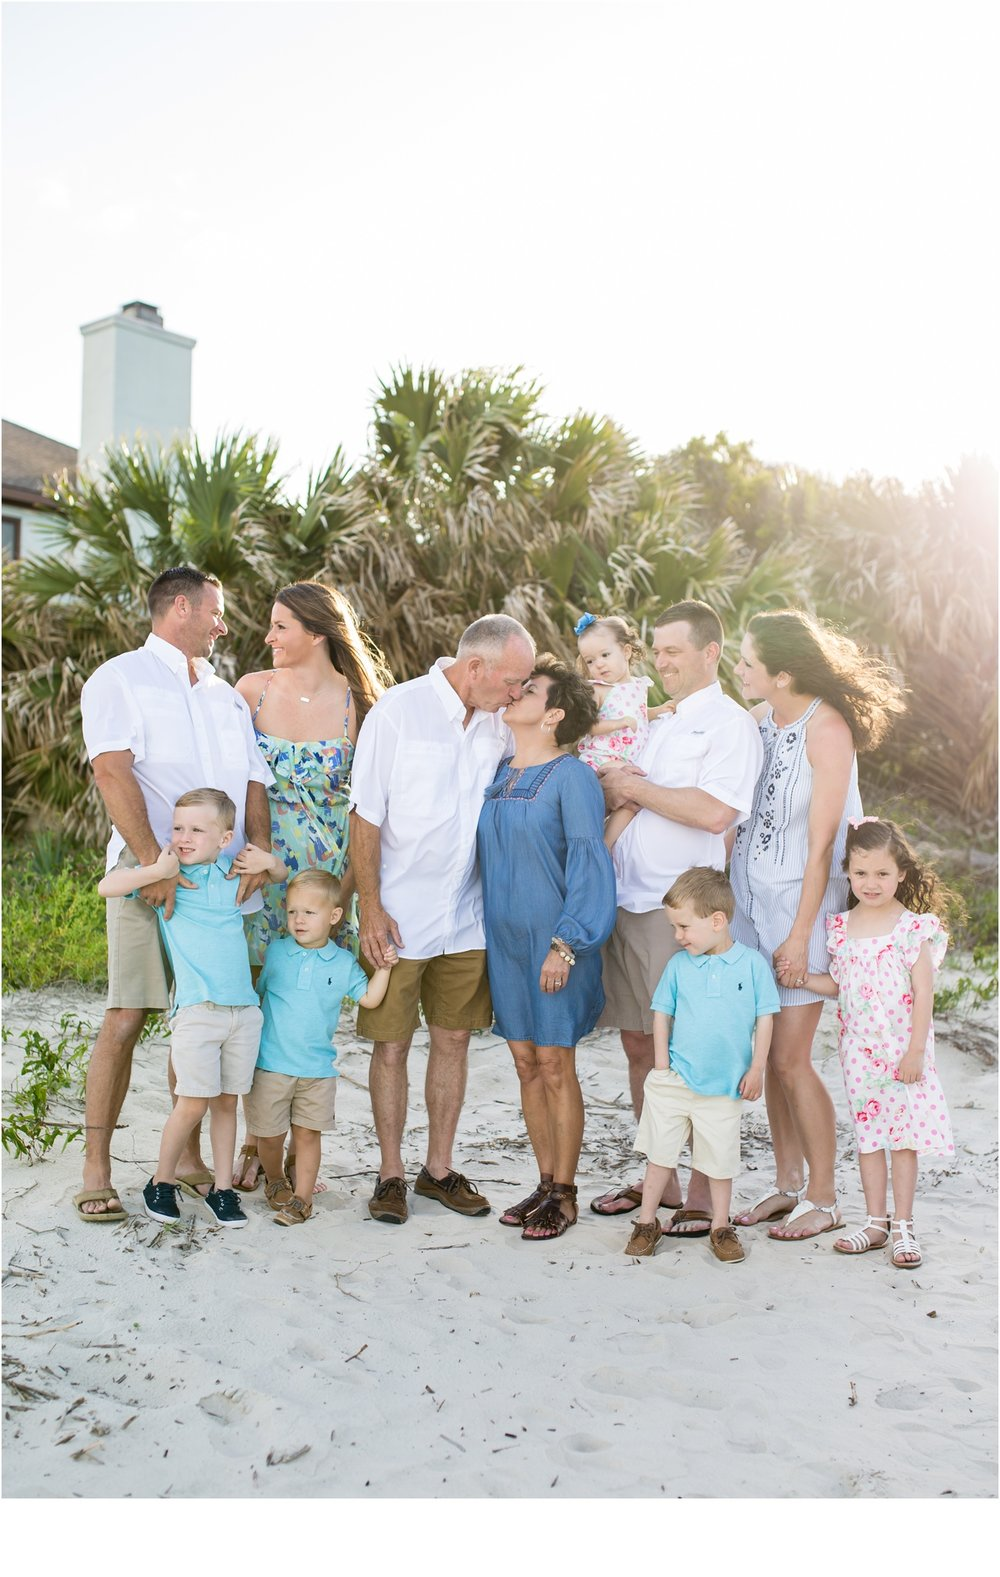 Rainey_Gregg_Photography_St._Simons_Island_Georgia_California_Wedding_Portrait_Photography_0924.jpg